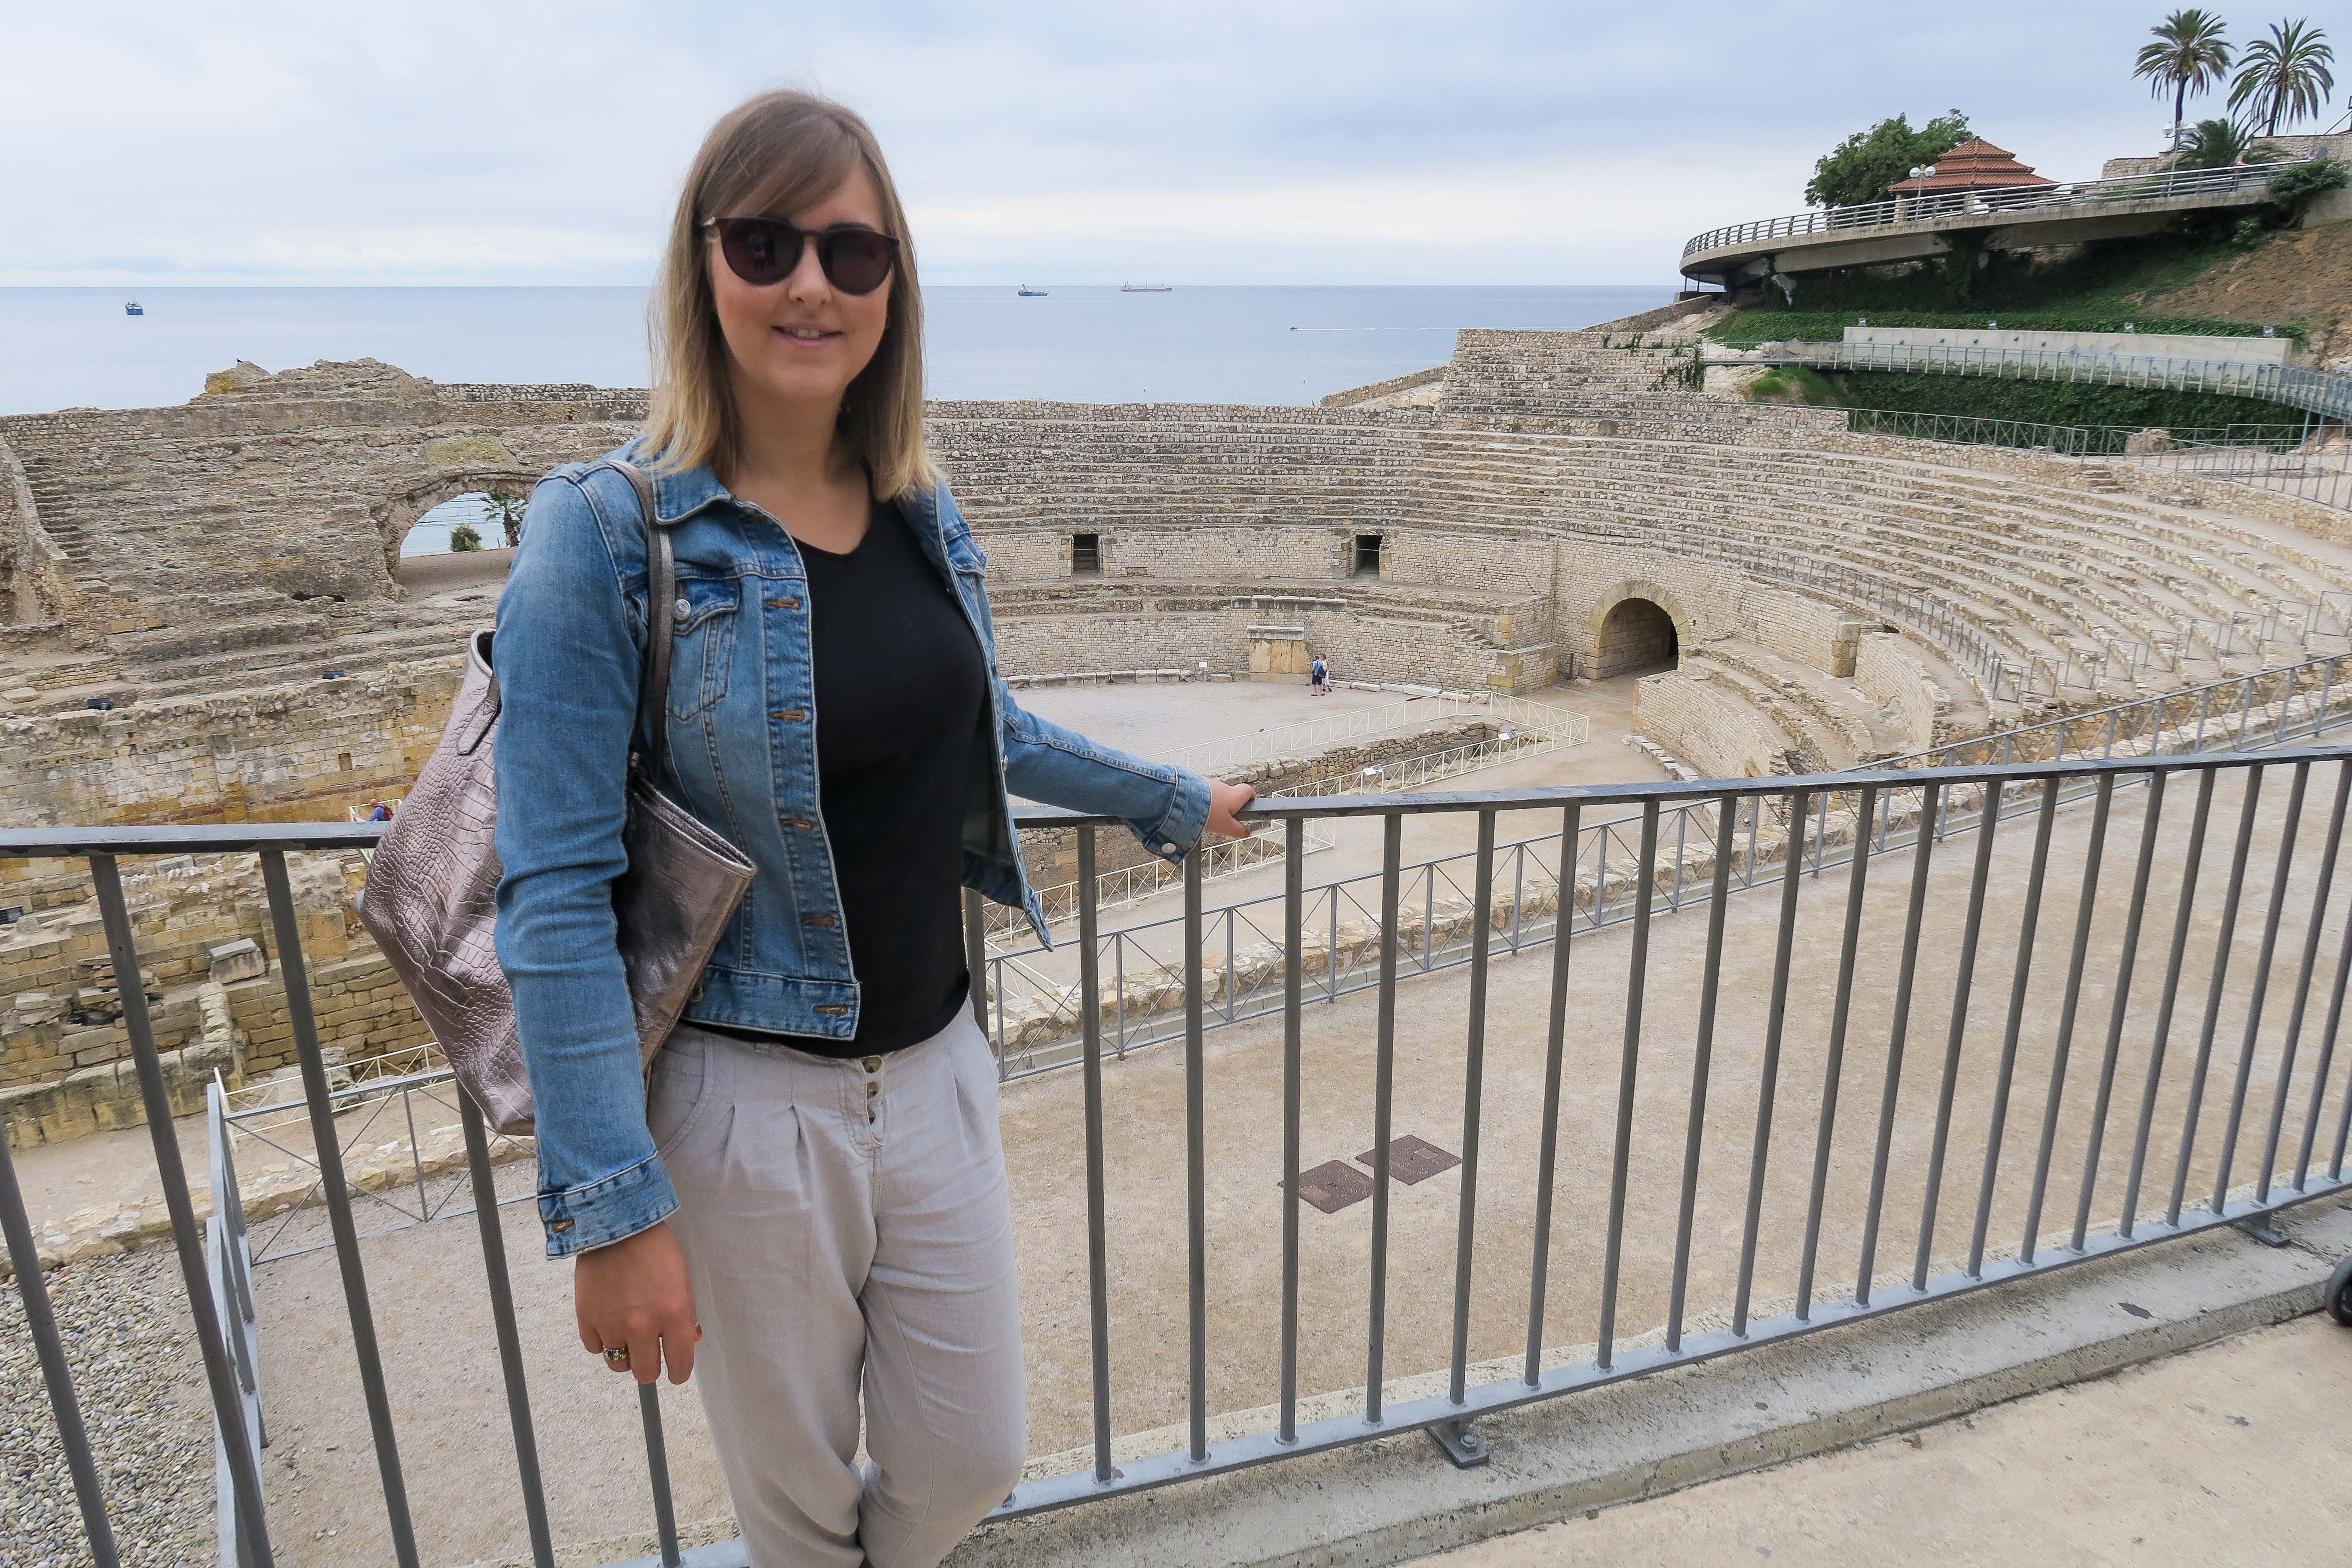 Tarragona, Spain. Travel Diary & Blog by Rosie Andre (Catalan, Catalonia, Catalunya, Spanish, Roman Ruins, Amphitheatre, Walls, History, Information, Europe, Wanderlust, Photo, Photography, Photographs, Info, Architecture, Cathedral, Church, Referendum, Independence, Food, Castell, Tradition, Summer, Holiday, Vacation, Warm, Day Trip, Guide, To Do & See)